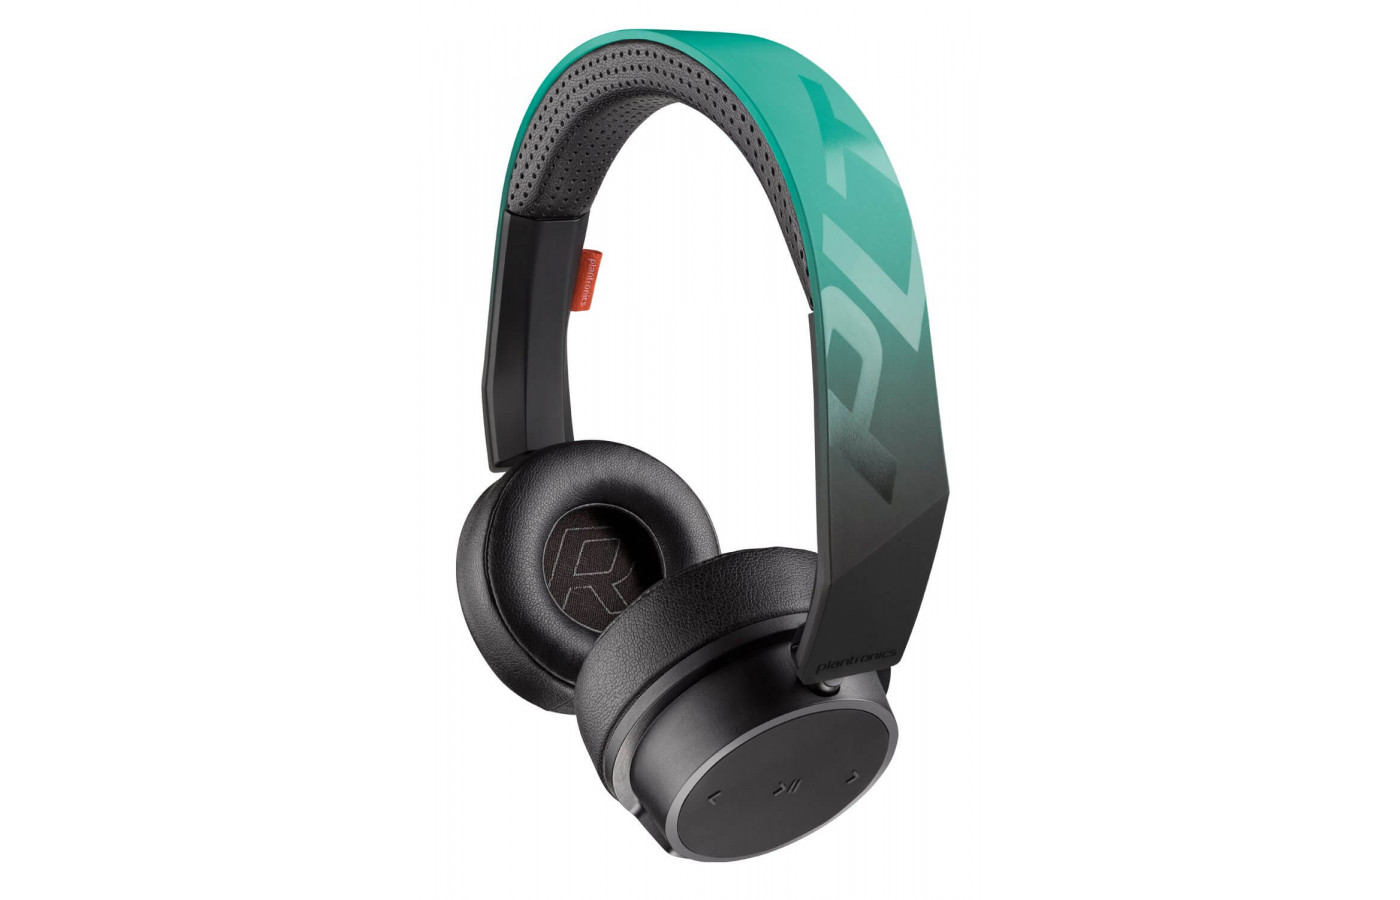 The BackBeat FIT 500 is available in black and teal